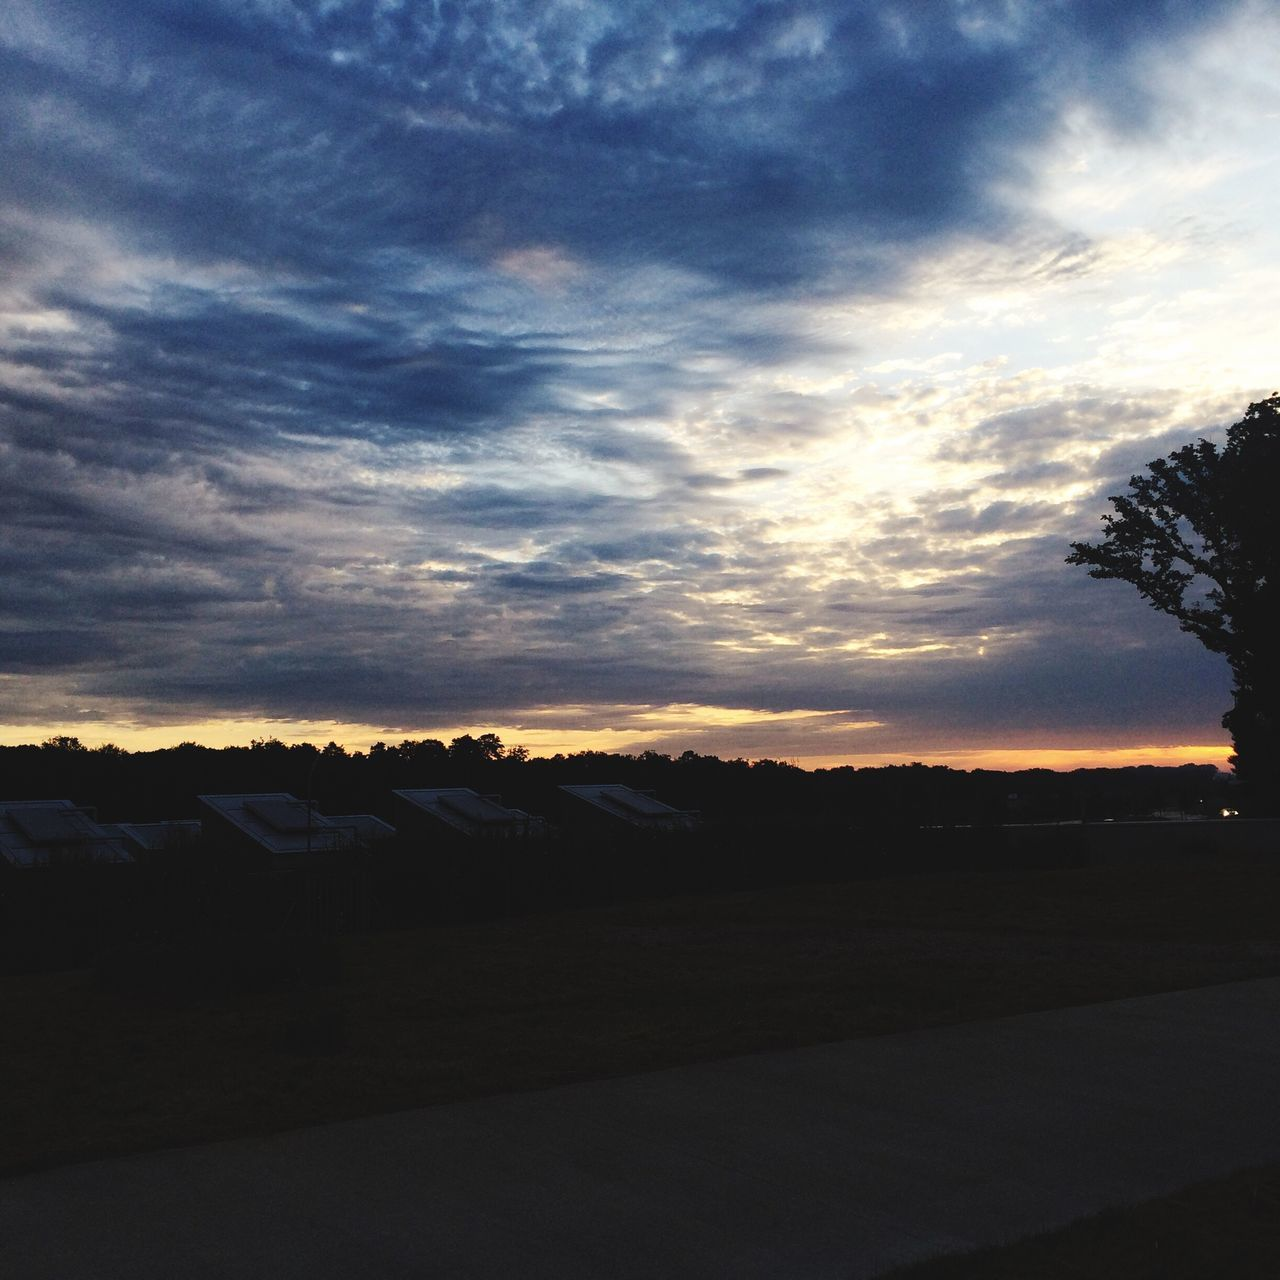 sunset, sky, cloud - sky, silhouette, scenics, nature, beauty in nature, tranquil scene, tranquility, landscape, no people, tree, outdoors, day